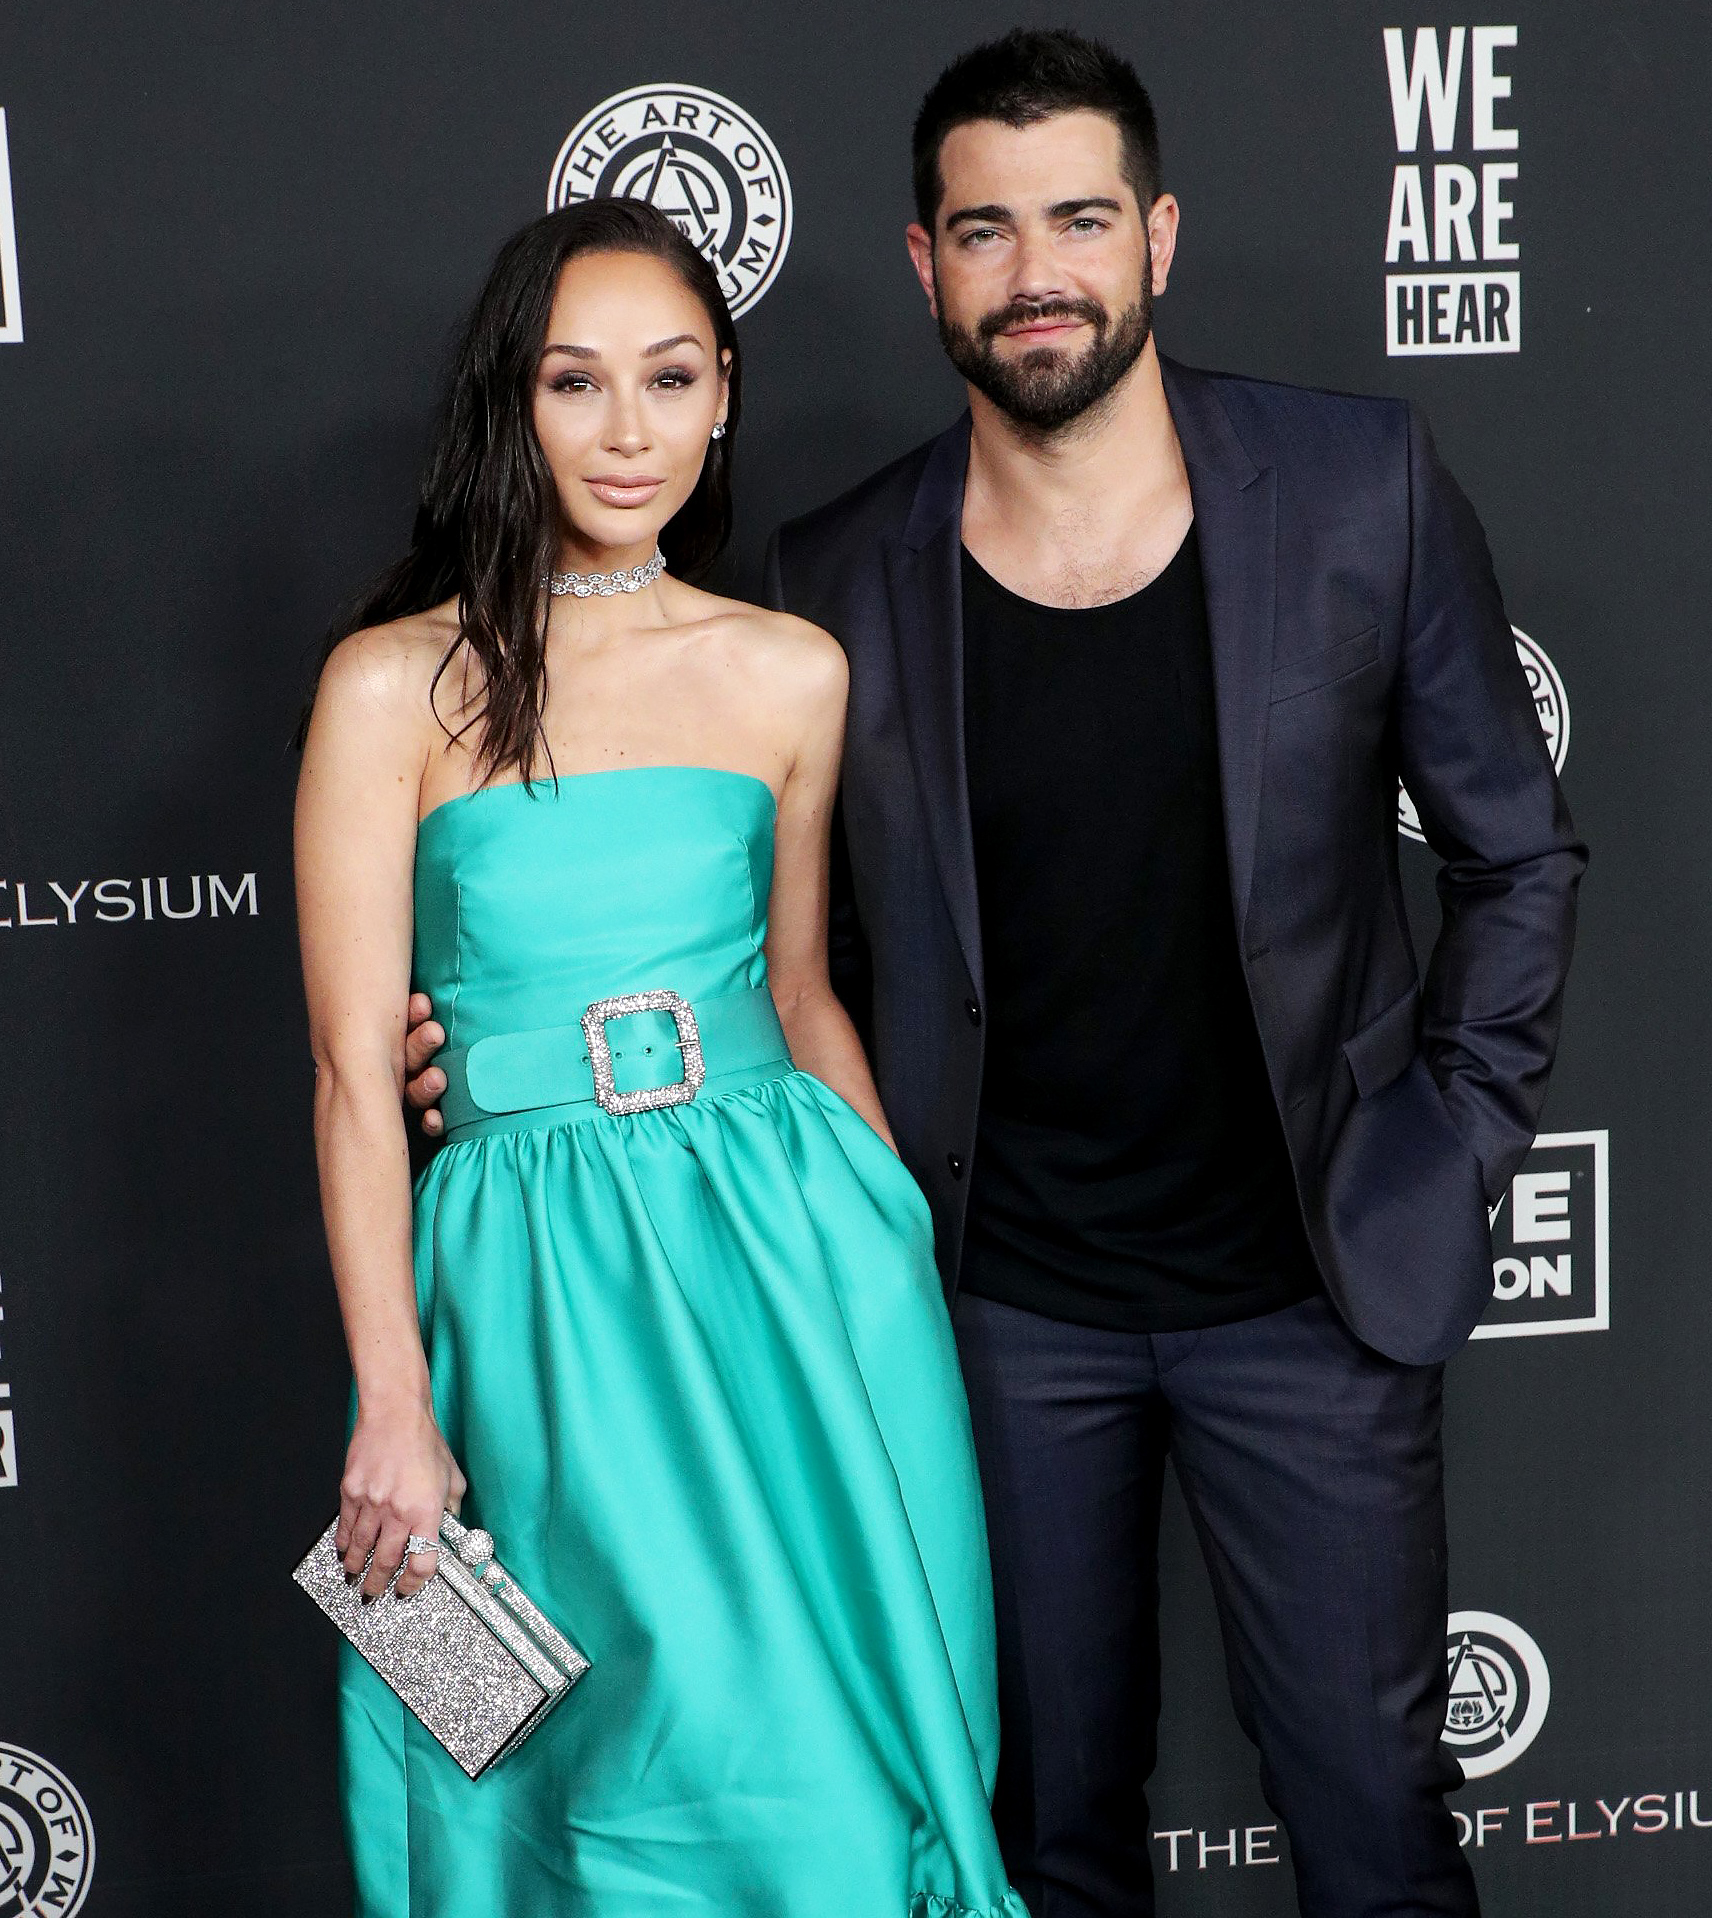 Jesse Metcalfe and Cara Santana Spotted Together 2 Months After Messy Split